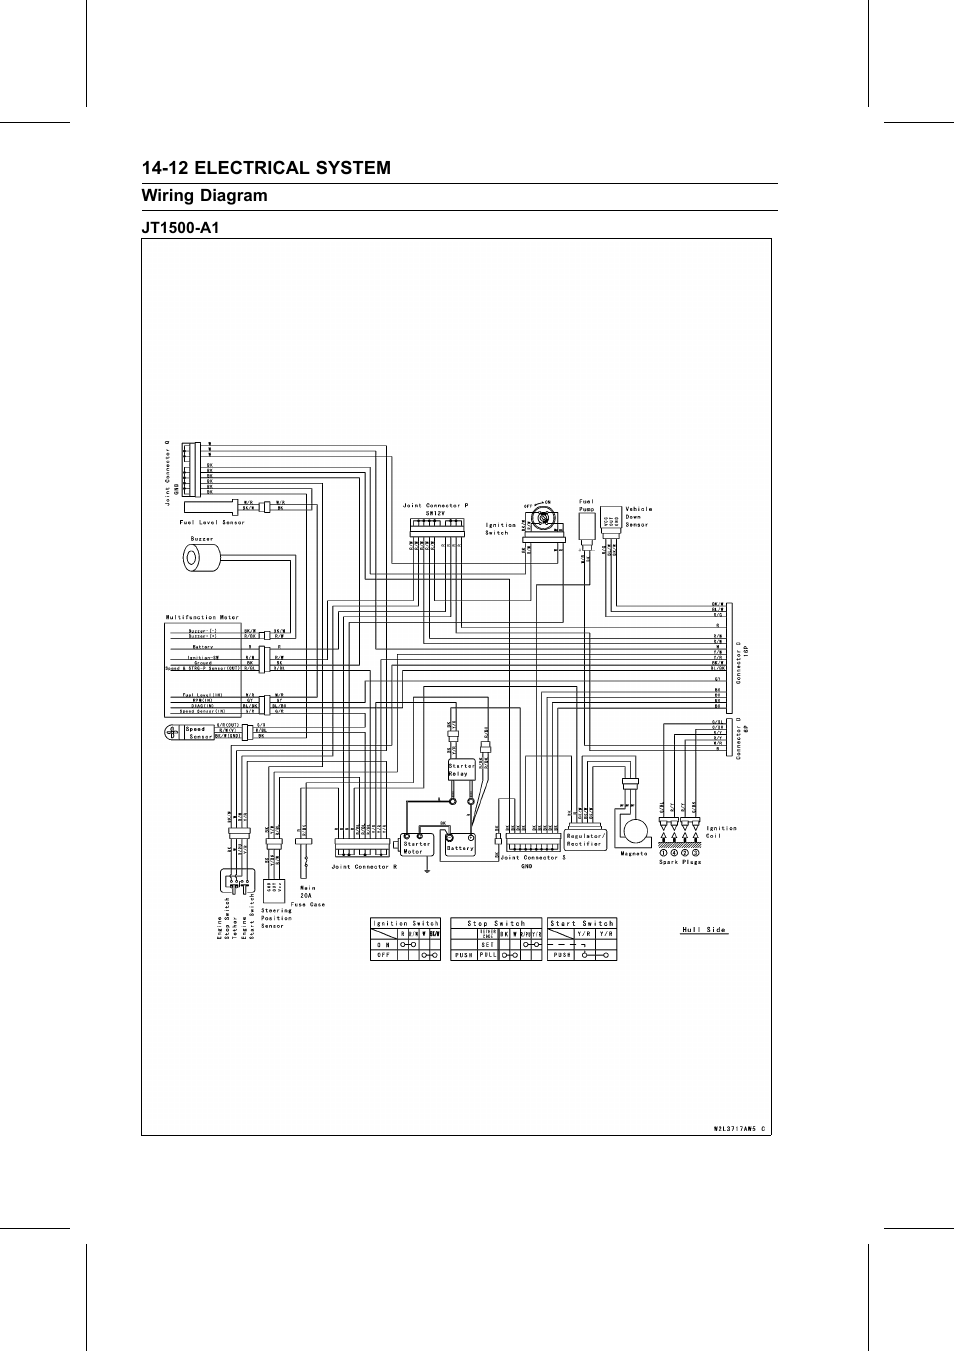 Yamaha Stx 125 Wiring Diagram Free Download Riva Schematic Jt1500 A1 Kawasaki 15f User Manual Page 338